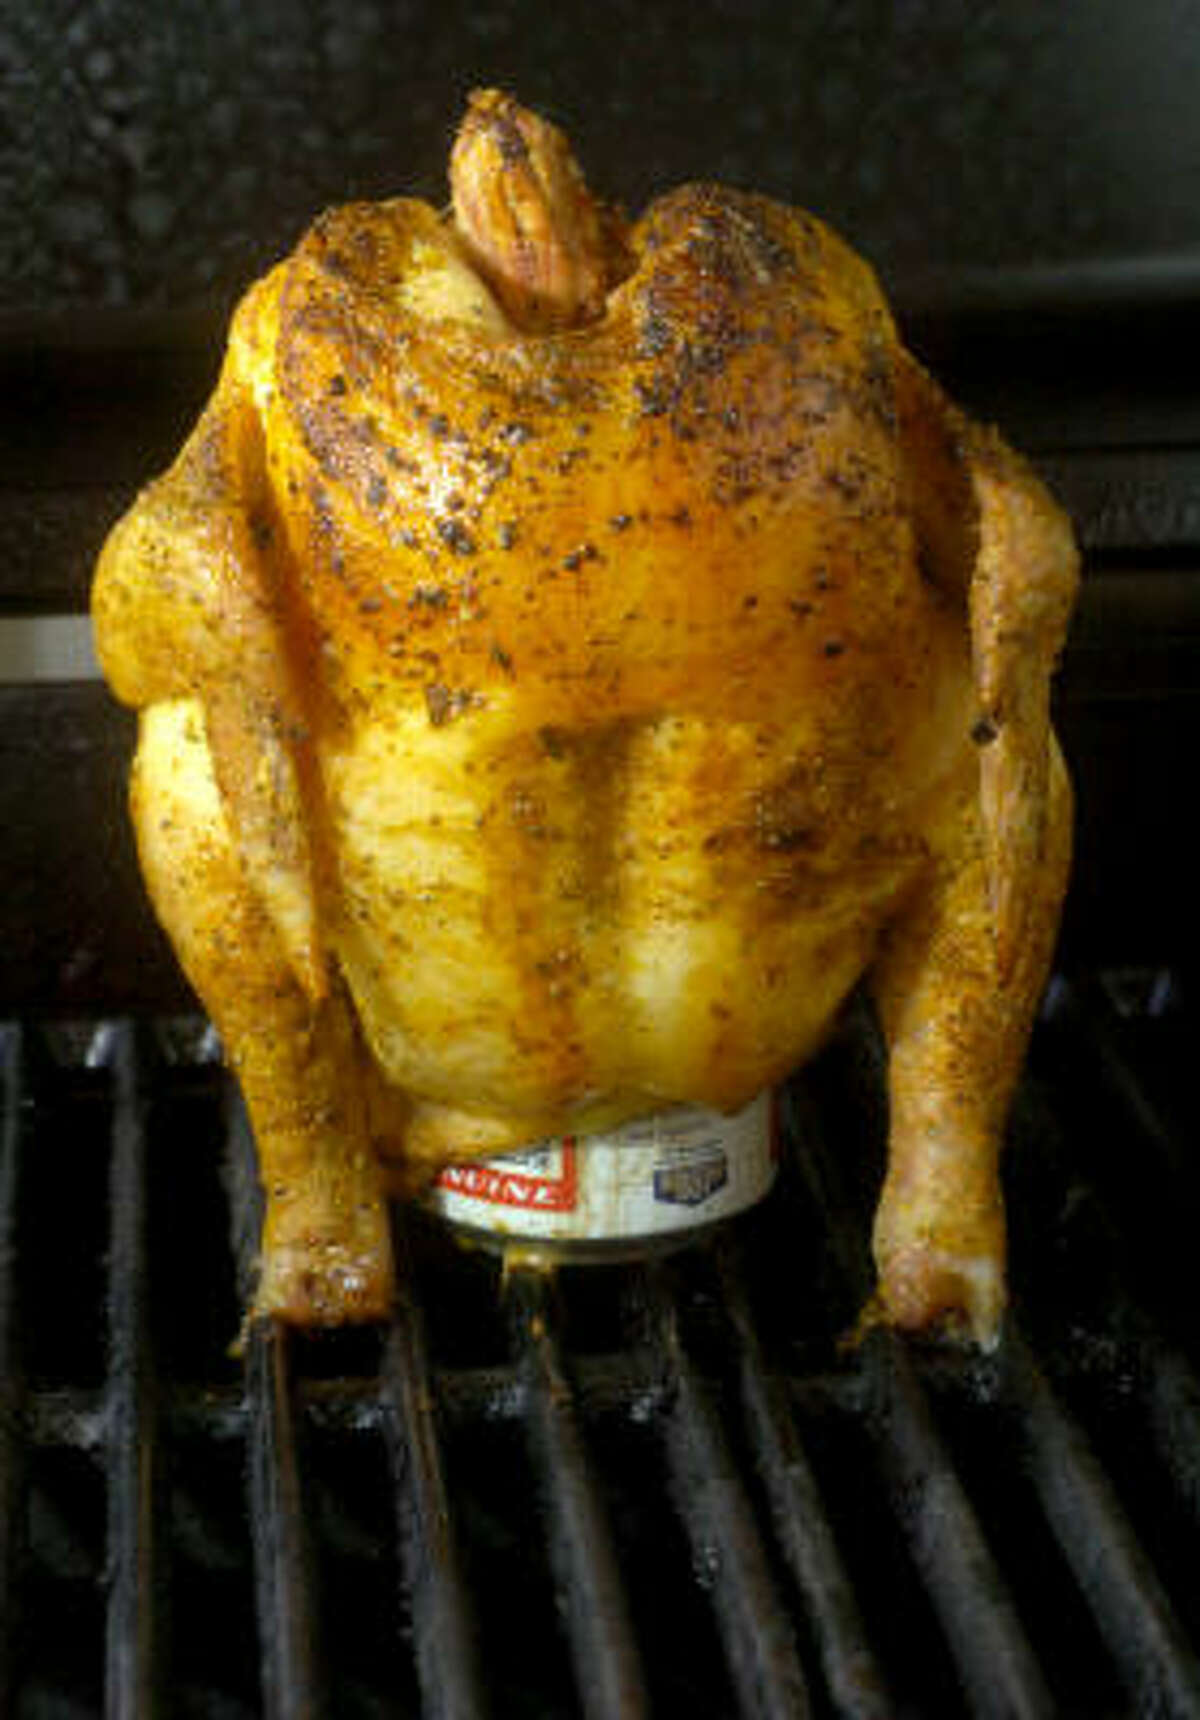 Roasting a chicken on a beer can allows for even heat distribution on all sides of the bird.